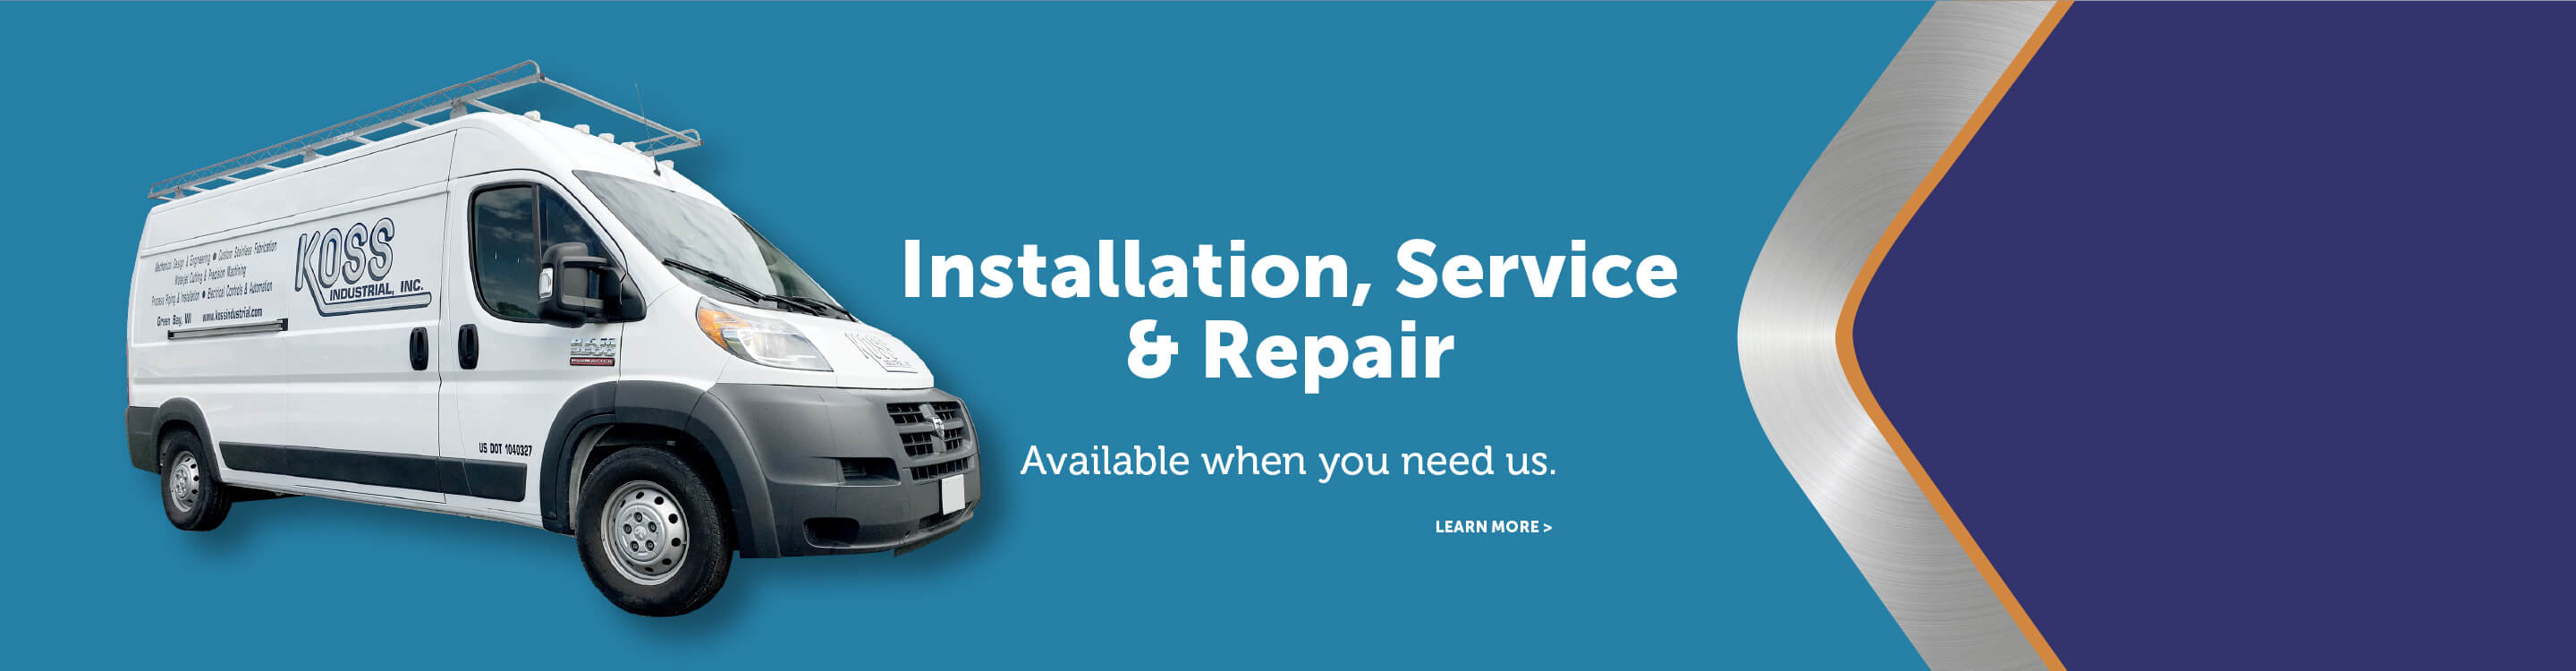 Koss Installation, Service & Repair